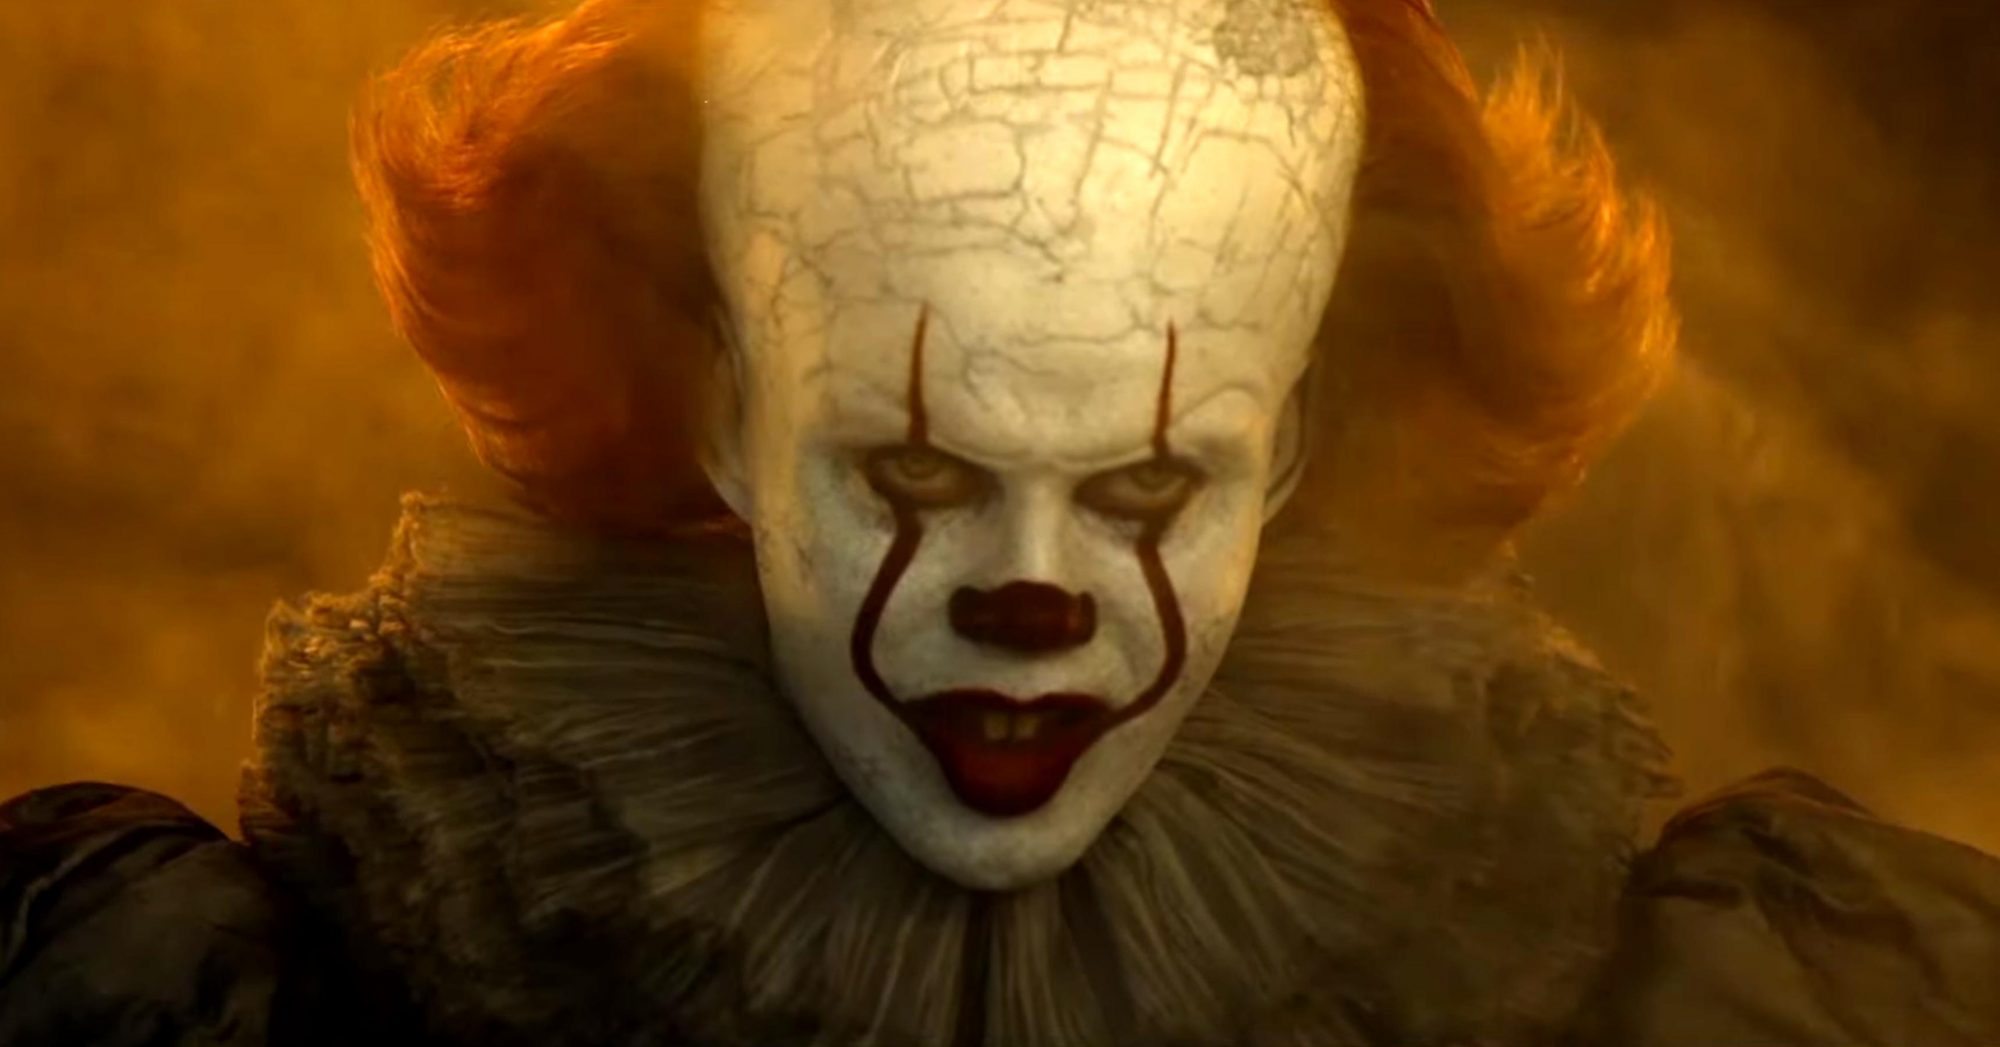 It: Chapter Two Exclusive Featurette - Come Home (2019) (screen grab) CR: Warner Bros. Pictures